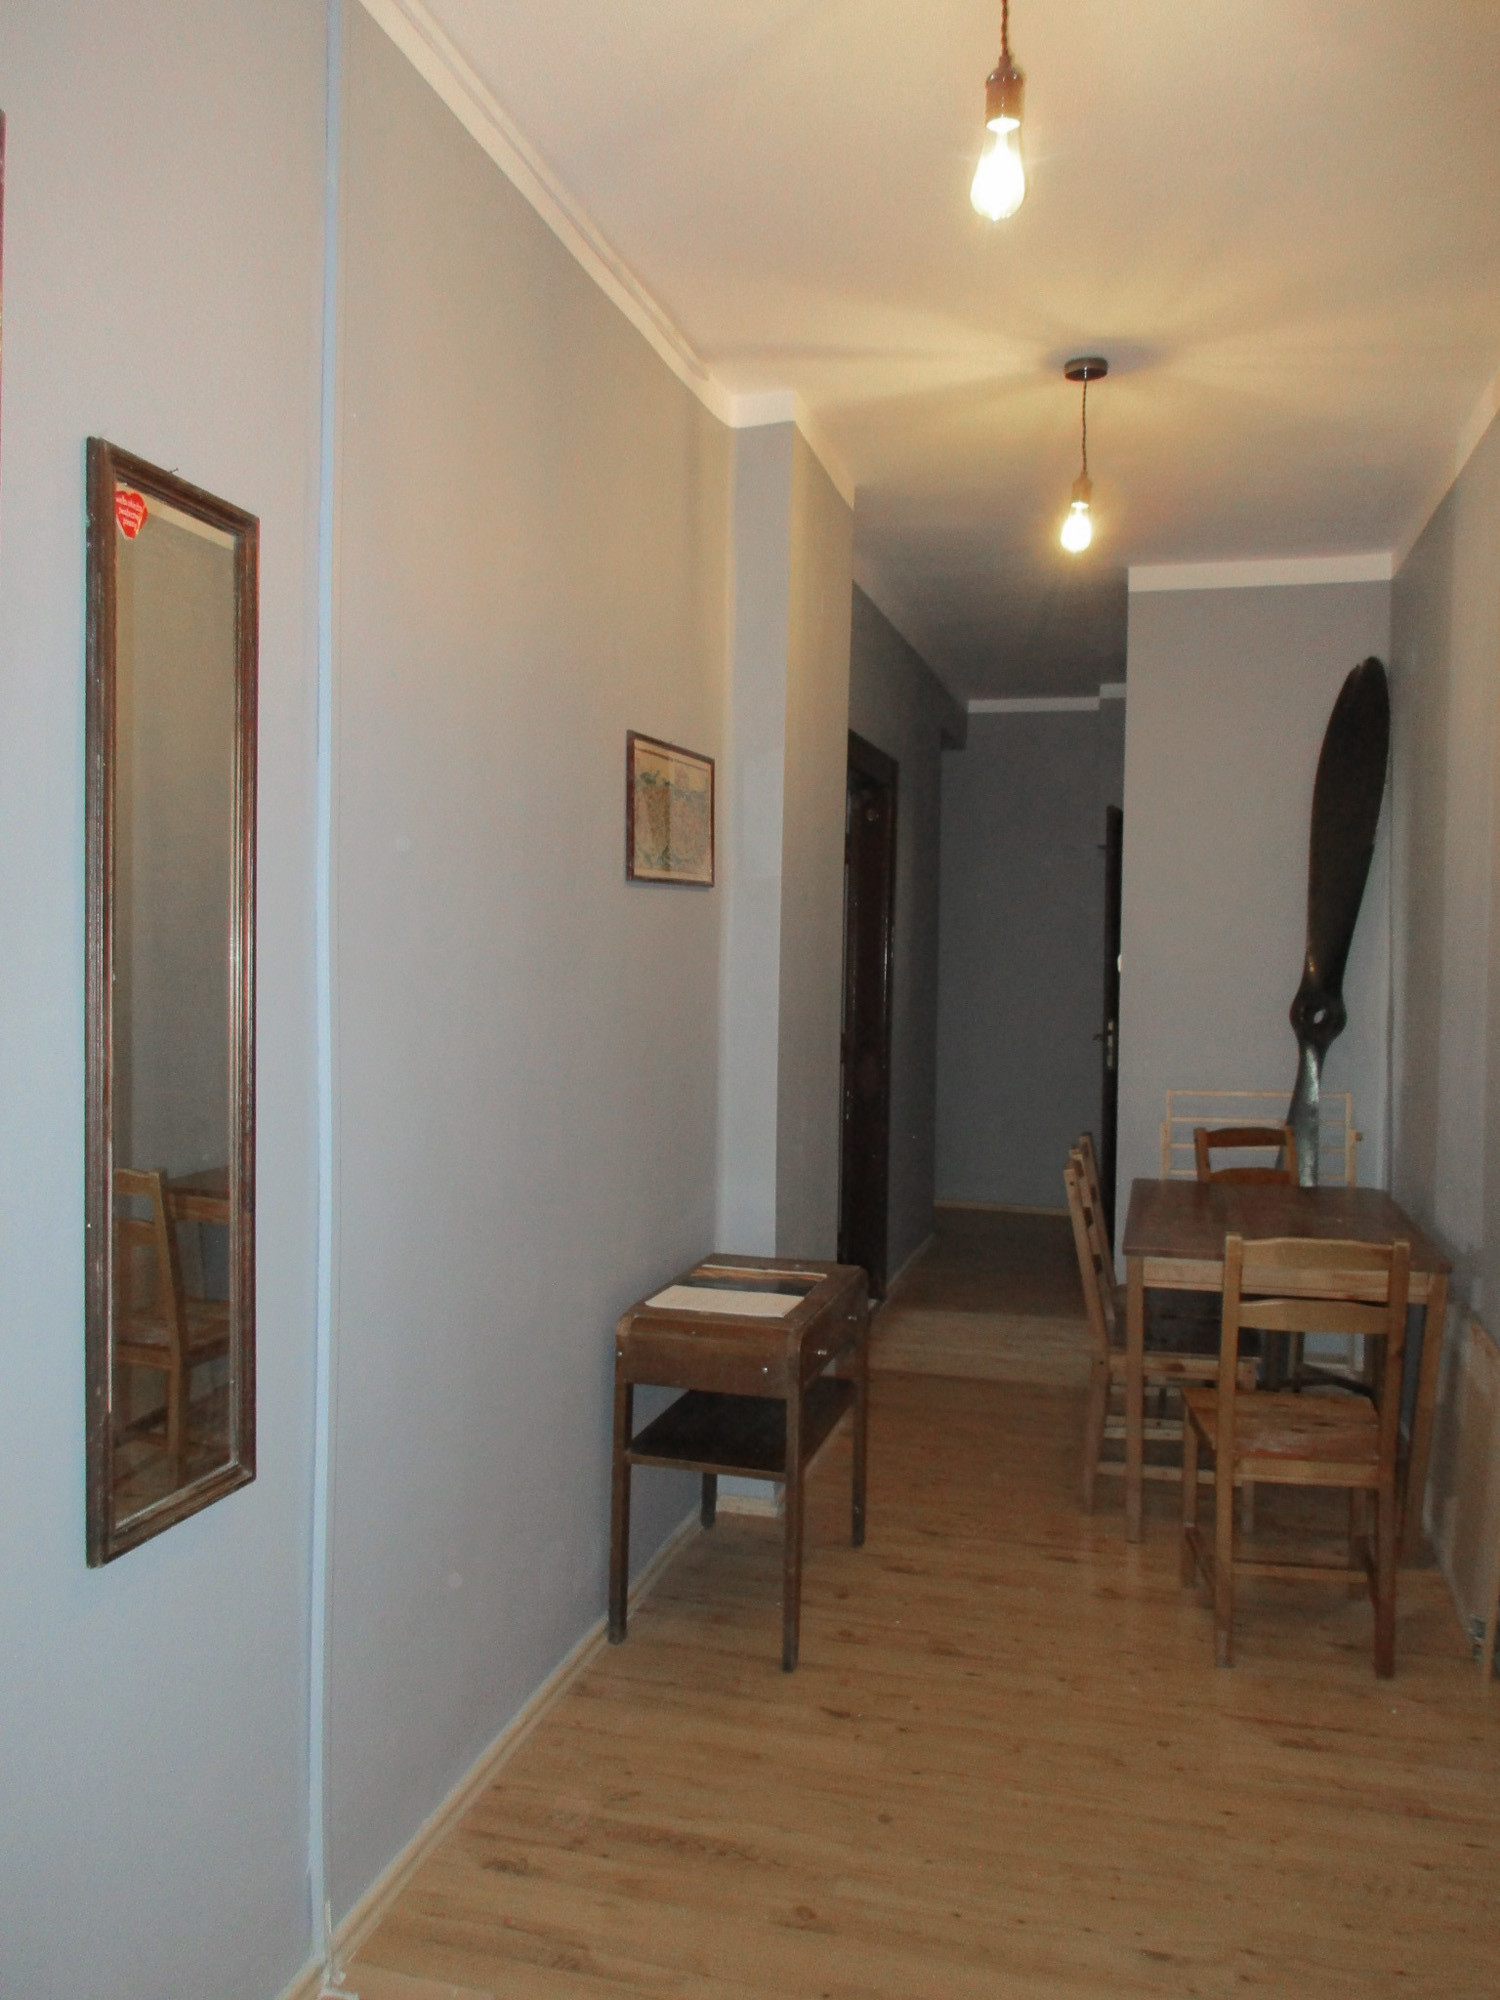 krakow cool student bedroom en may for rent in price the with room erasmus town special vintage old april pri furniture